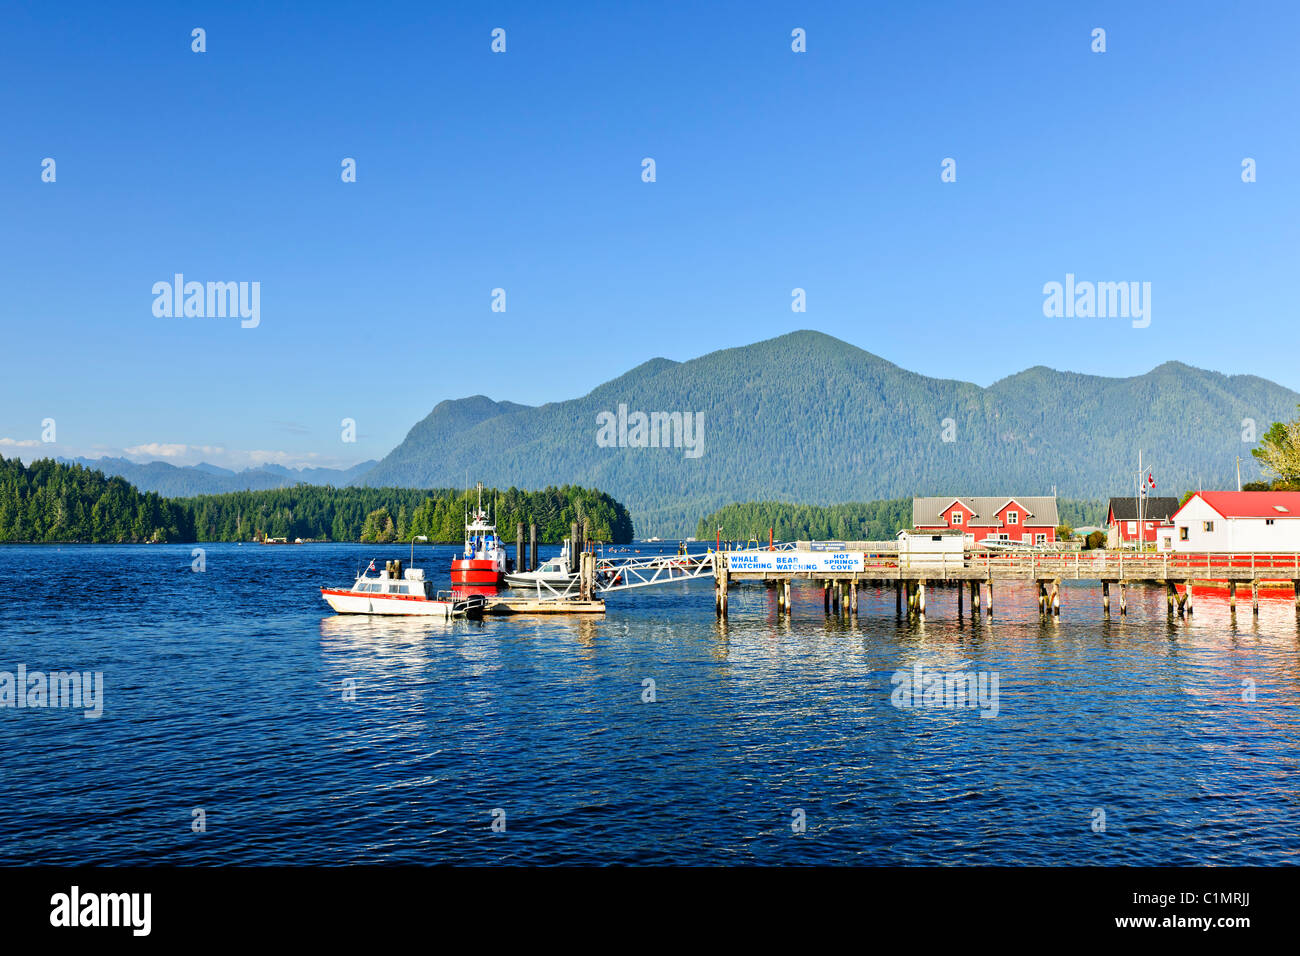 Boats at dock in Tofino on Pacific coast of British Columbia, Canada - Stock Image